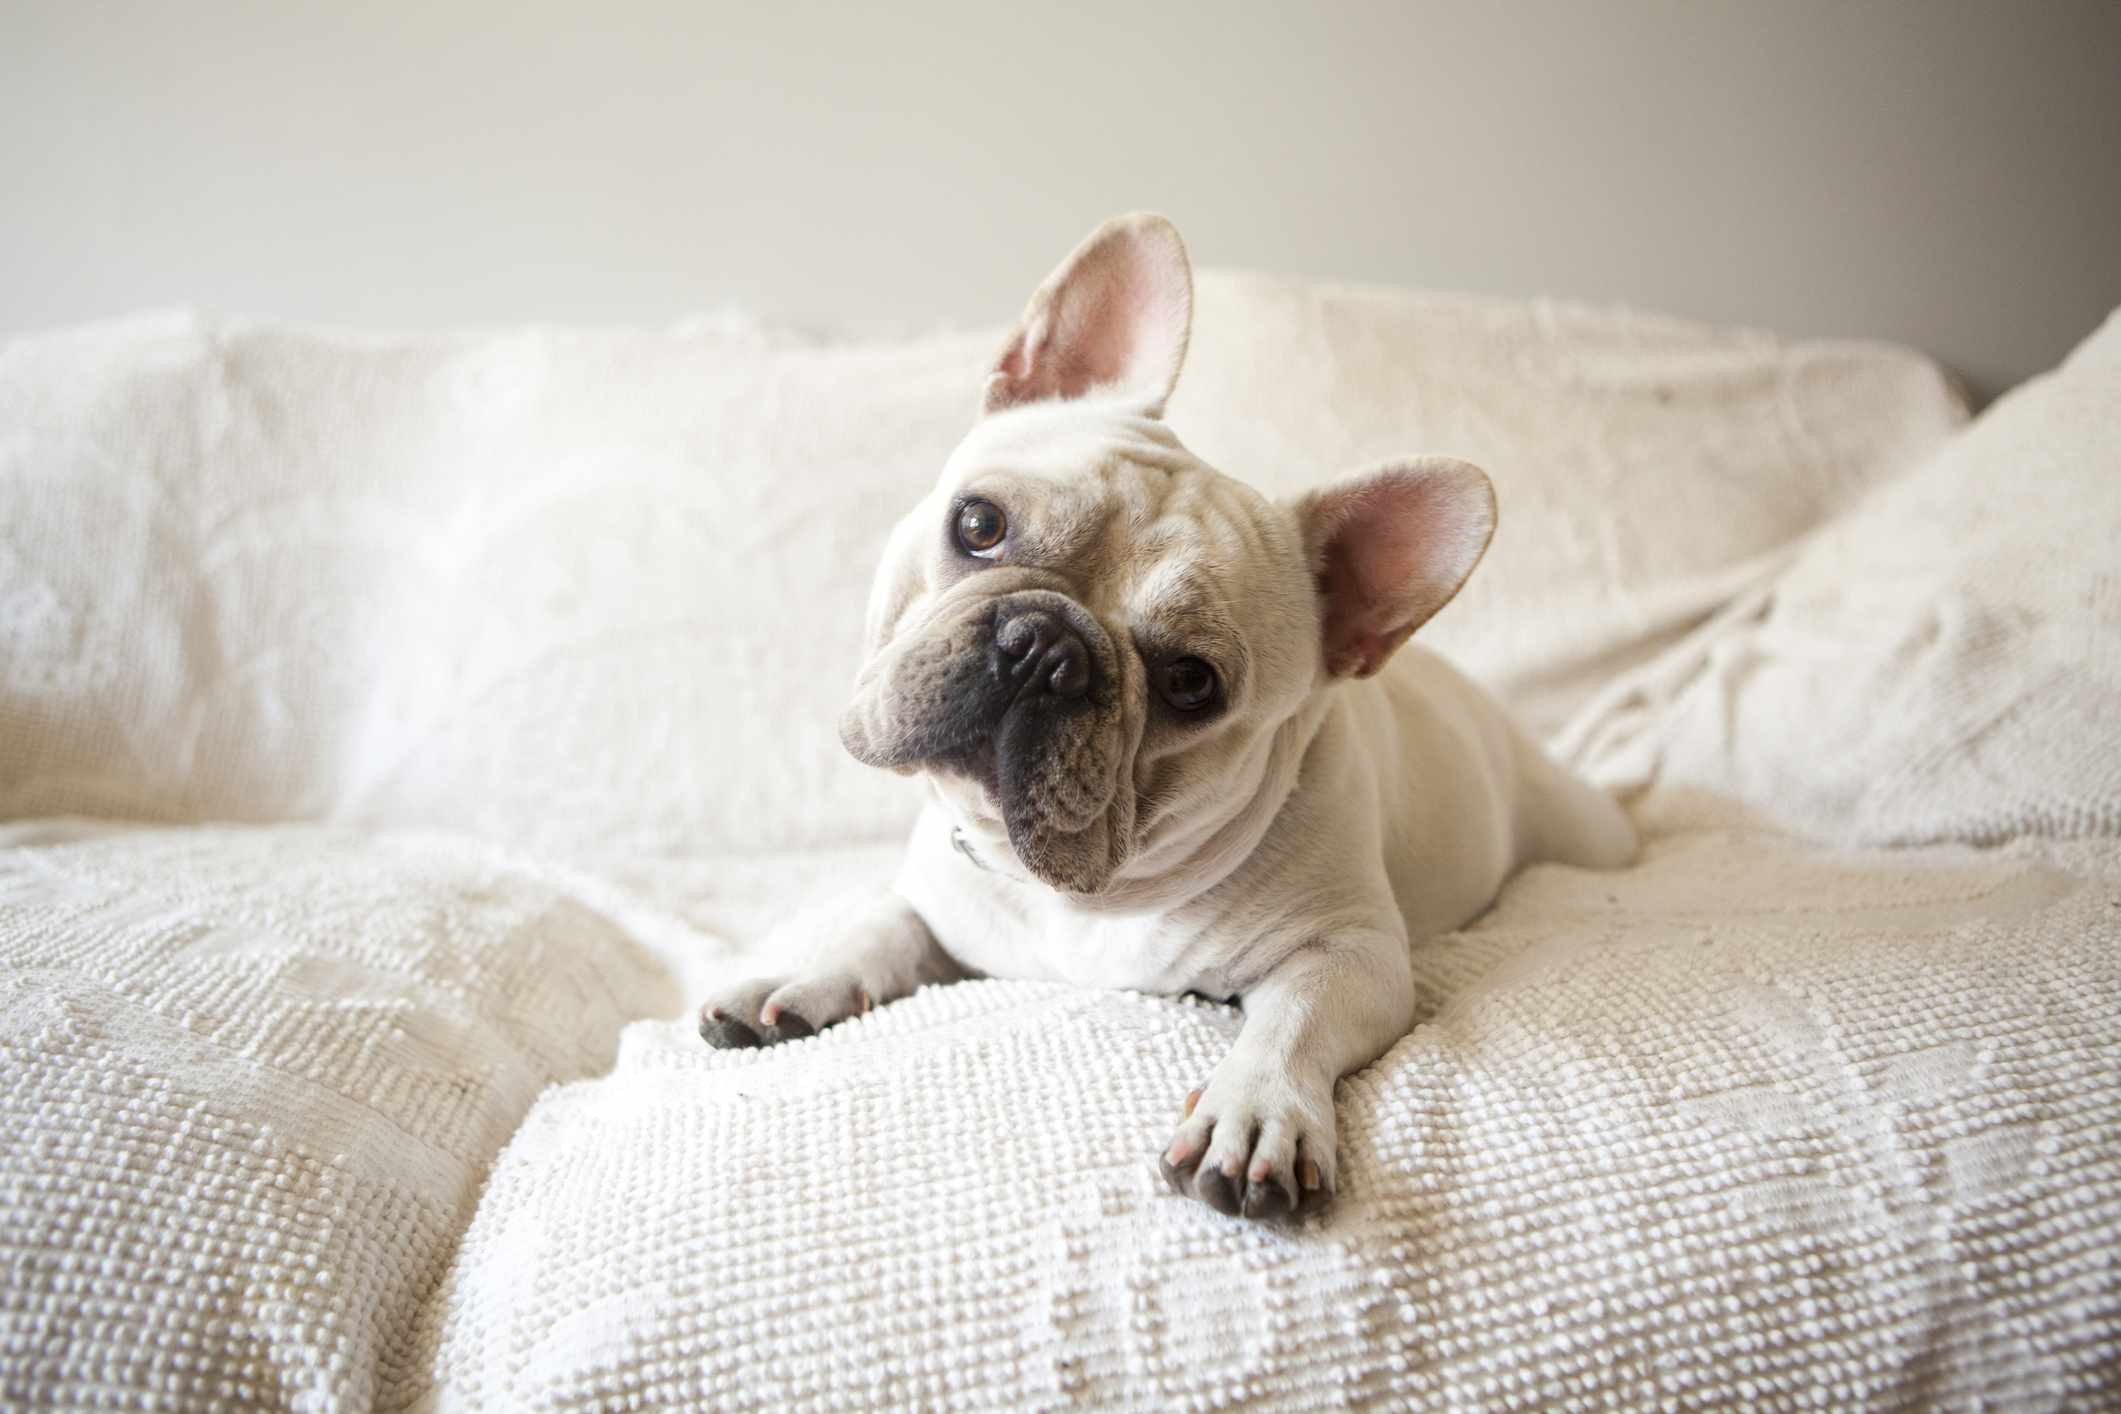 A white Frenchie sitting on a white couch.